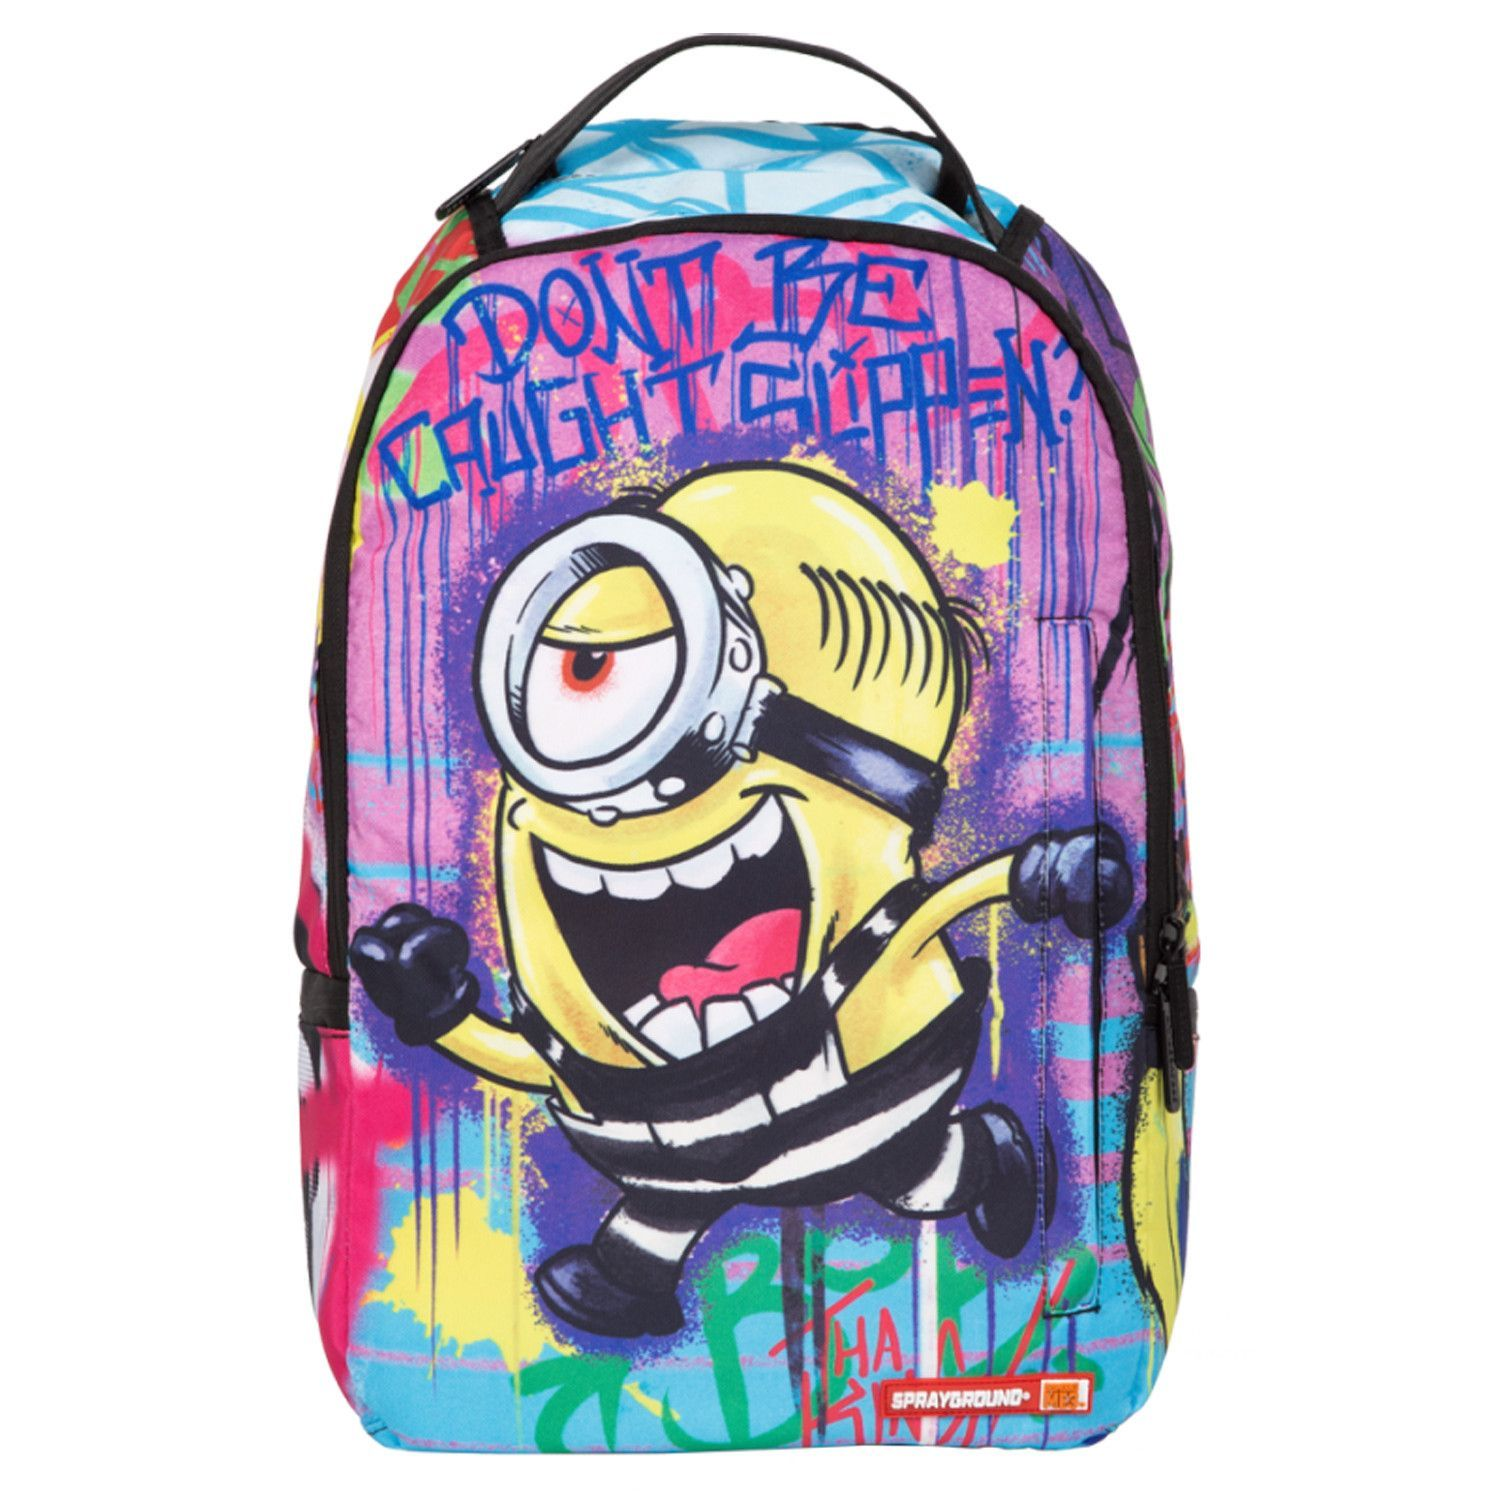 What Stores Sell Sprayground Backpacks- Fenix